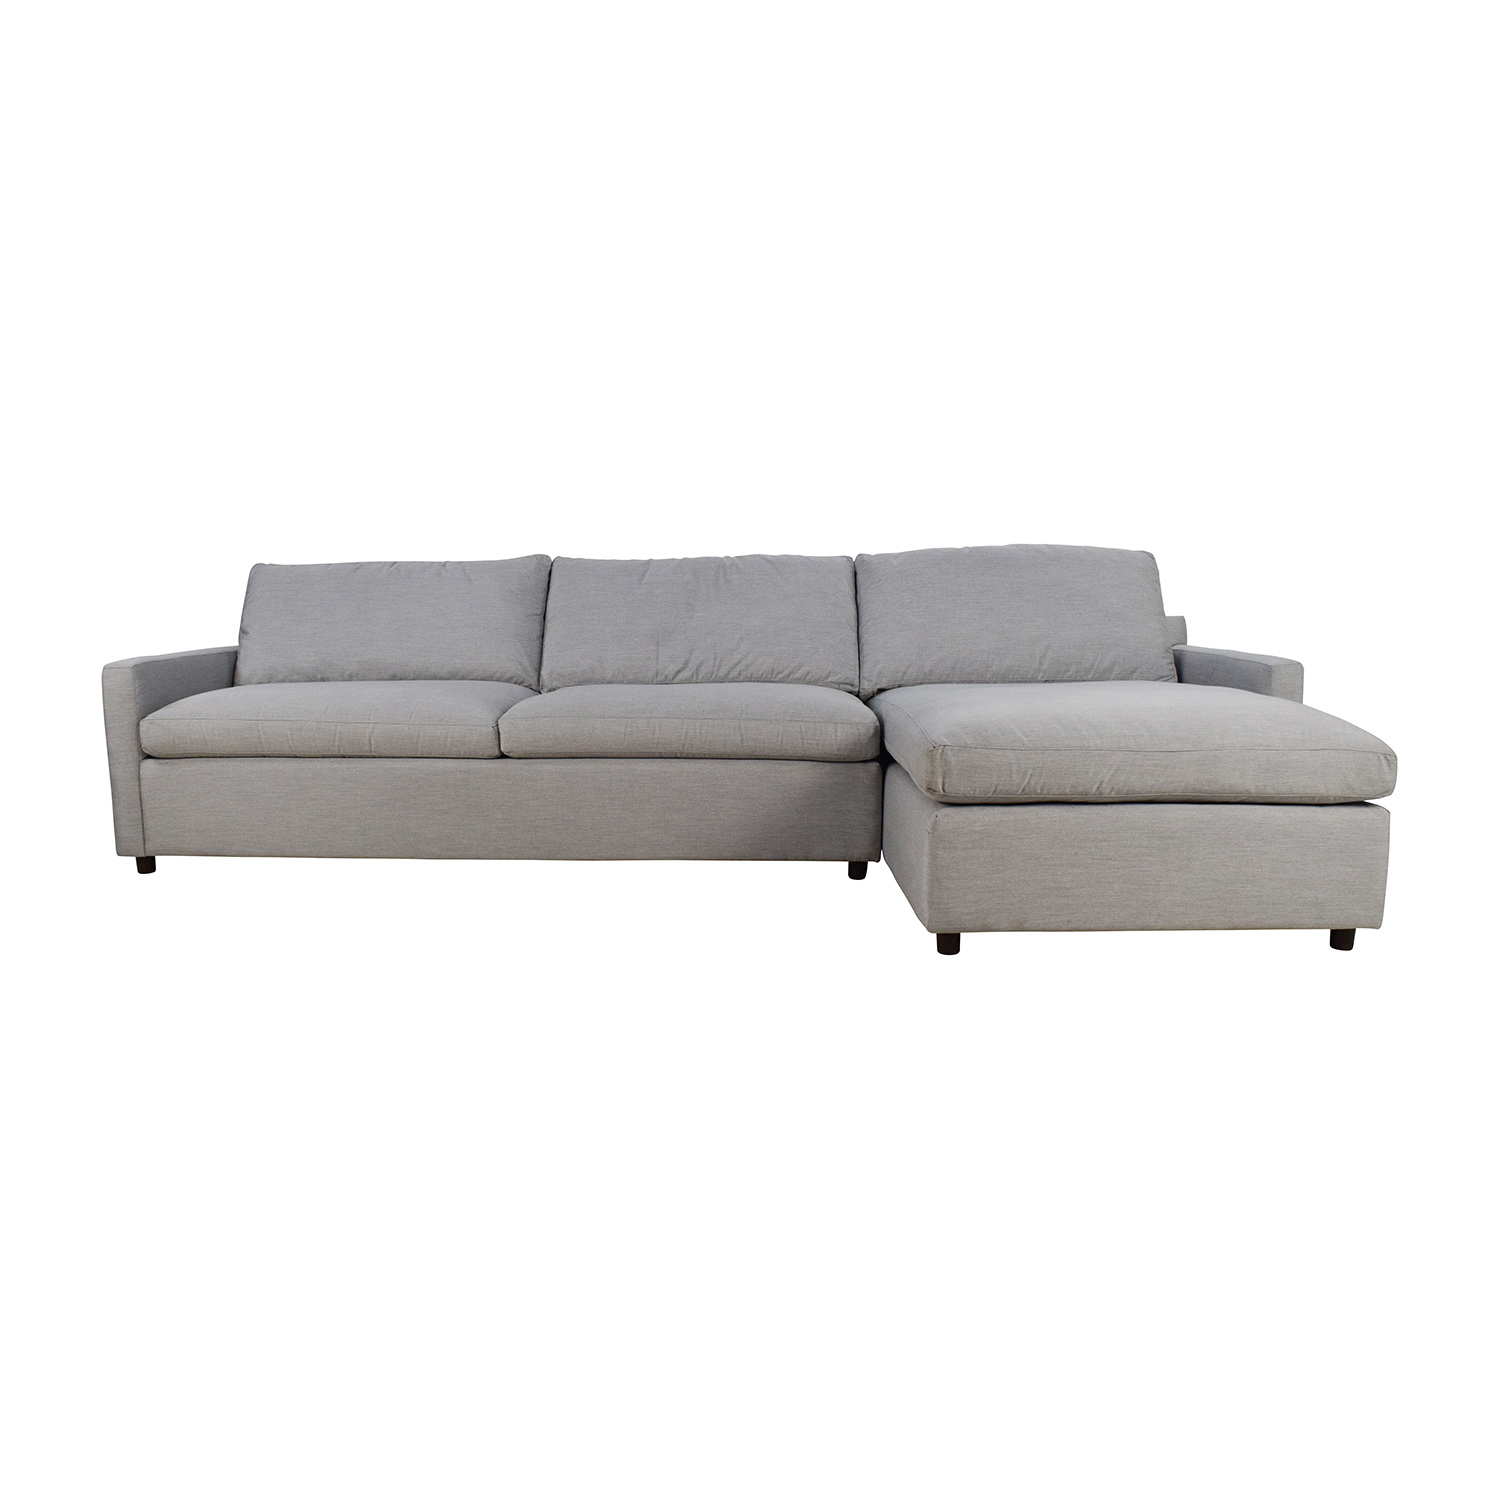 ikea couch sofa sectional manstad italian set designs 62 off bed with storage sofas abc carpet and home cobble hill lucali